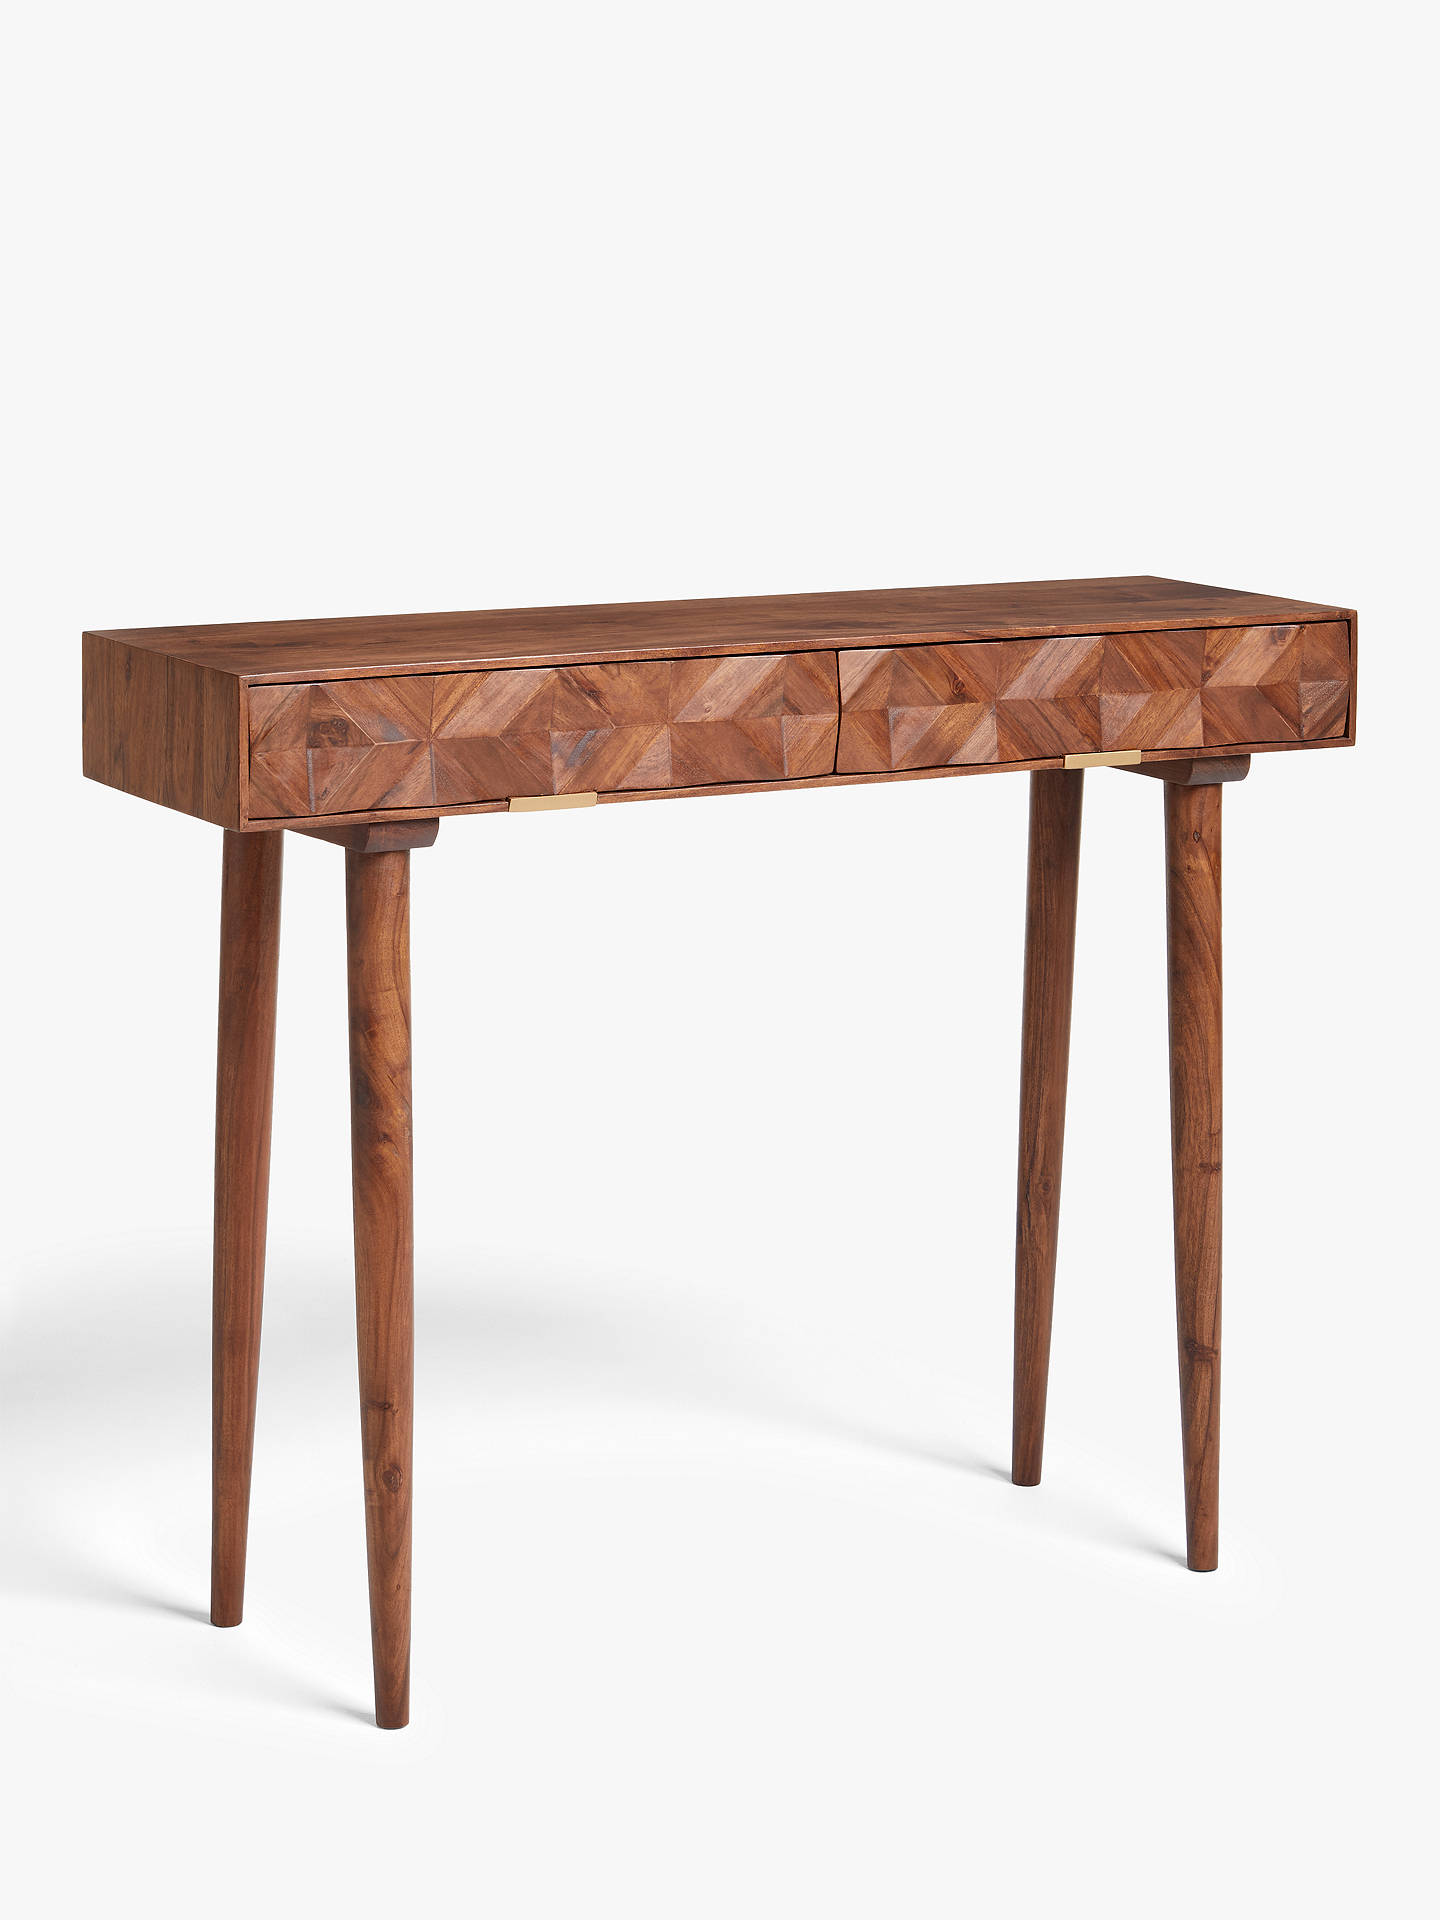 Swell John Lewis Partners Swoon Franklin Console Table Brown Spiritservingveterans Wood Chair Design Ideas Spiritservingveteransorg